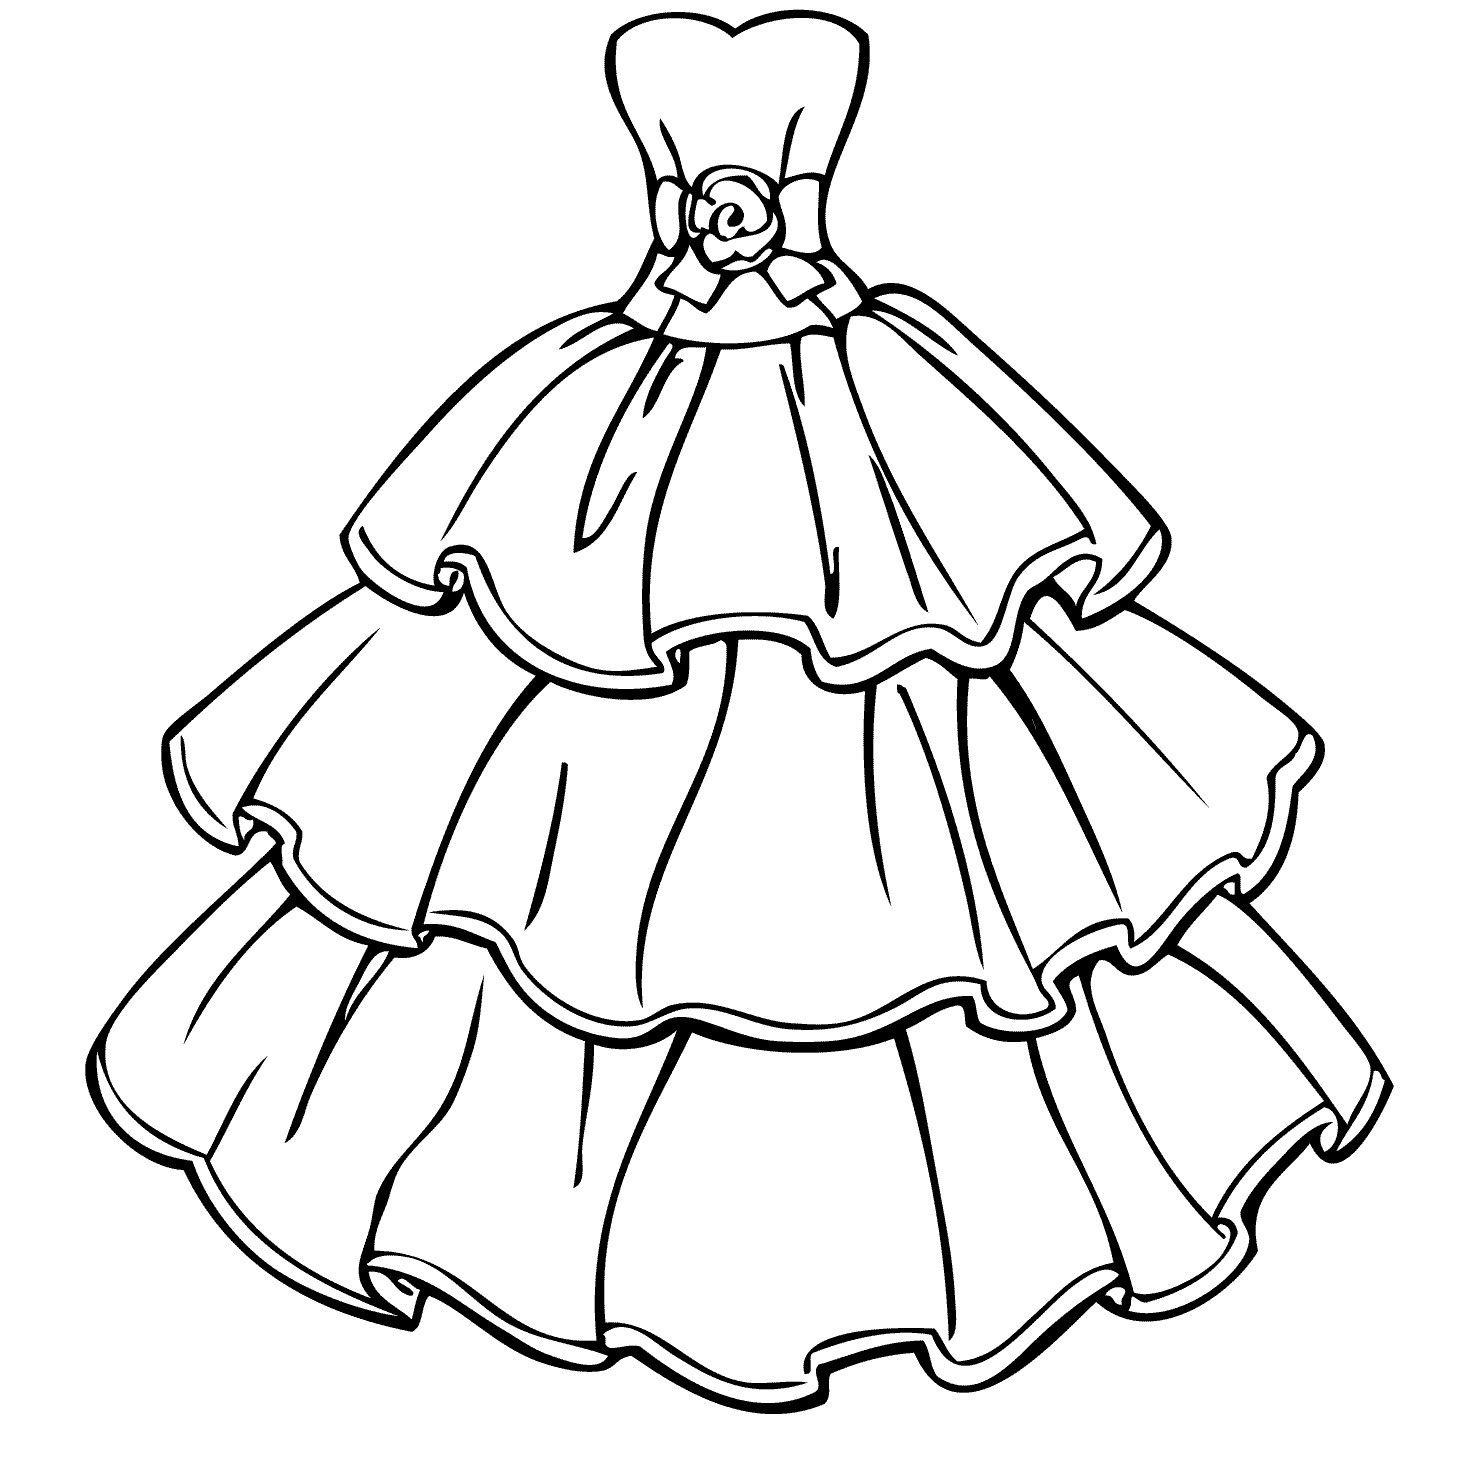 Princess Dress Coloring Page – Through the thousands of photos on